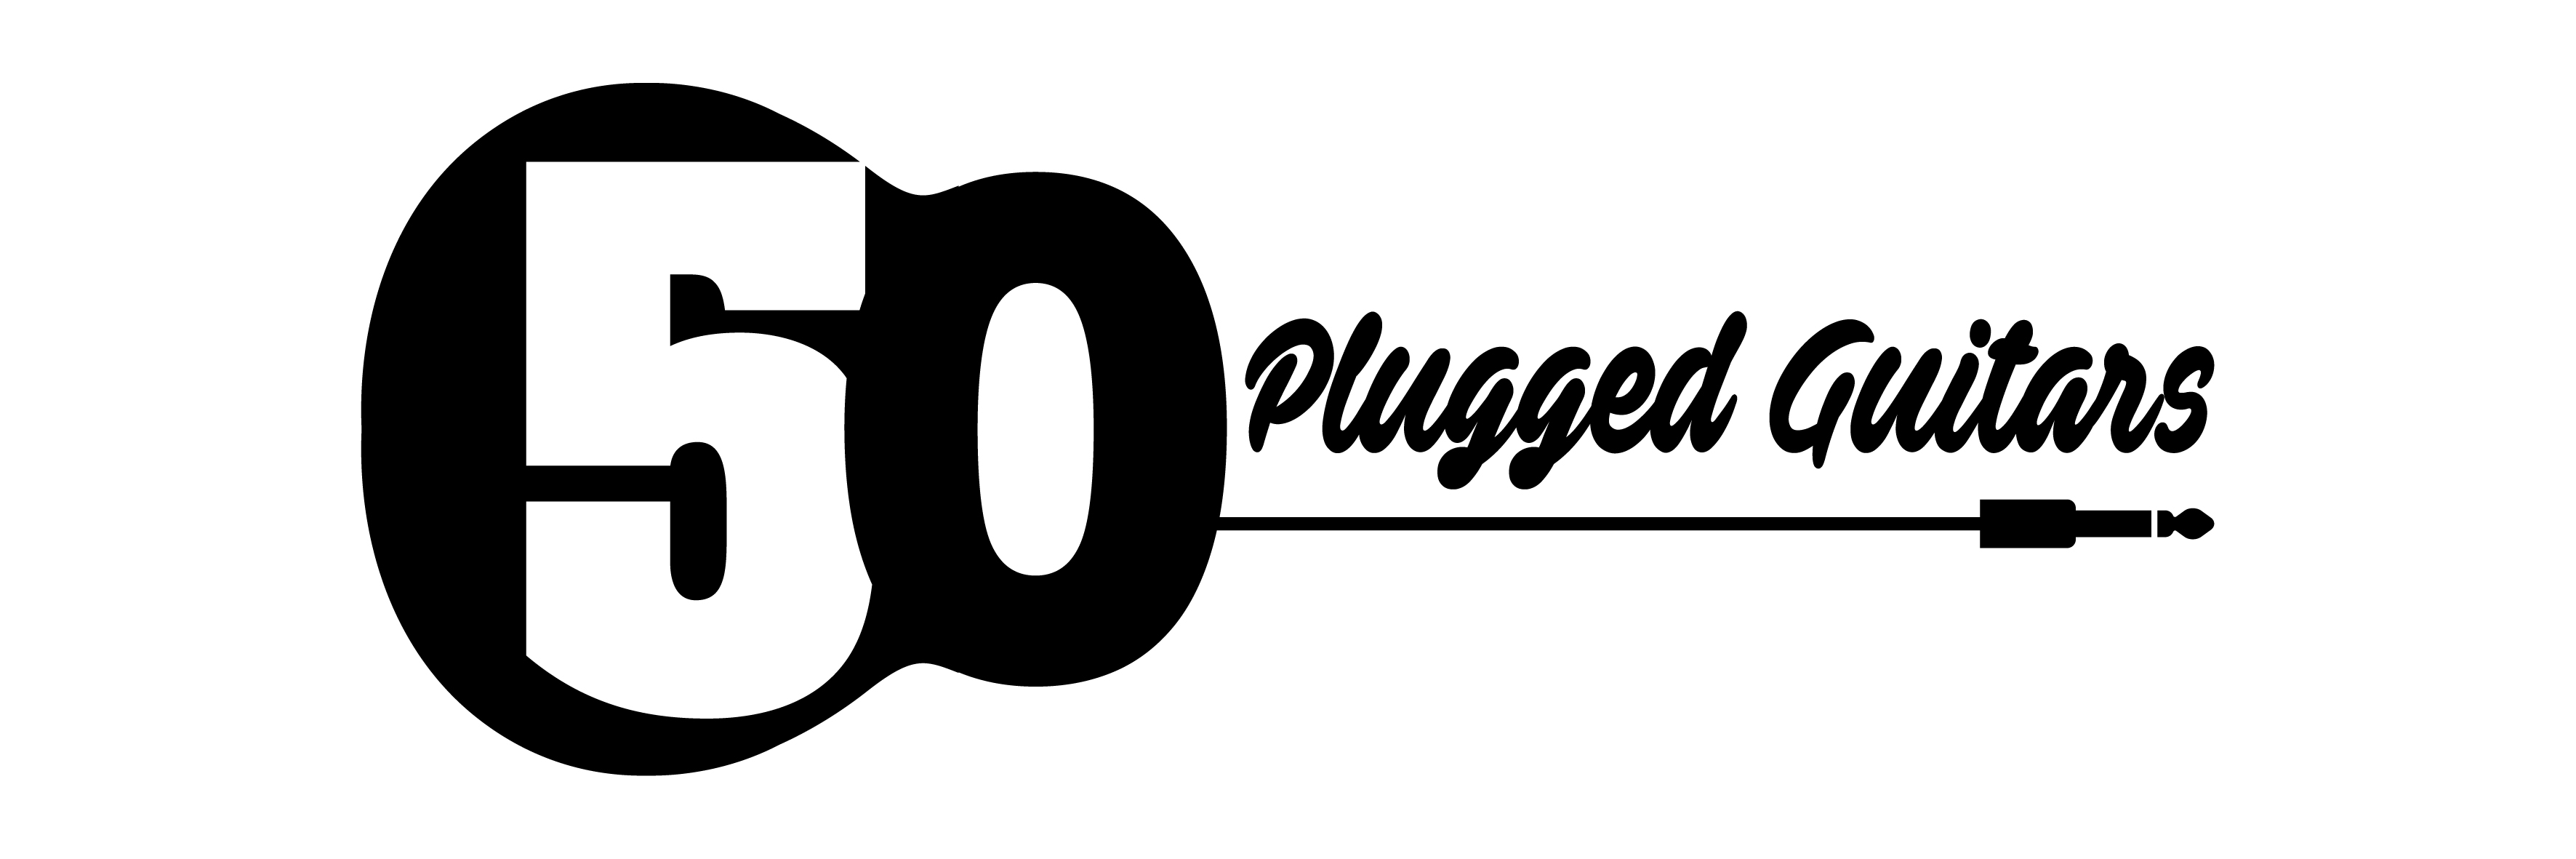 50 Plugged Guitars